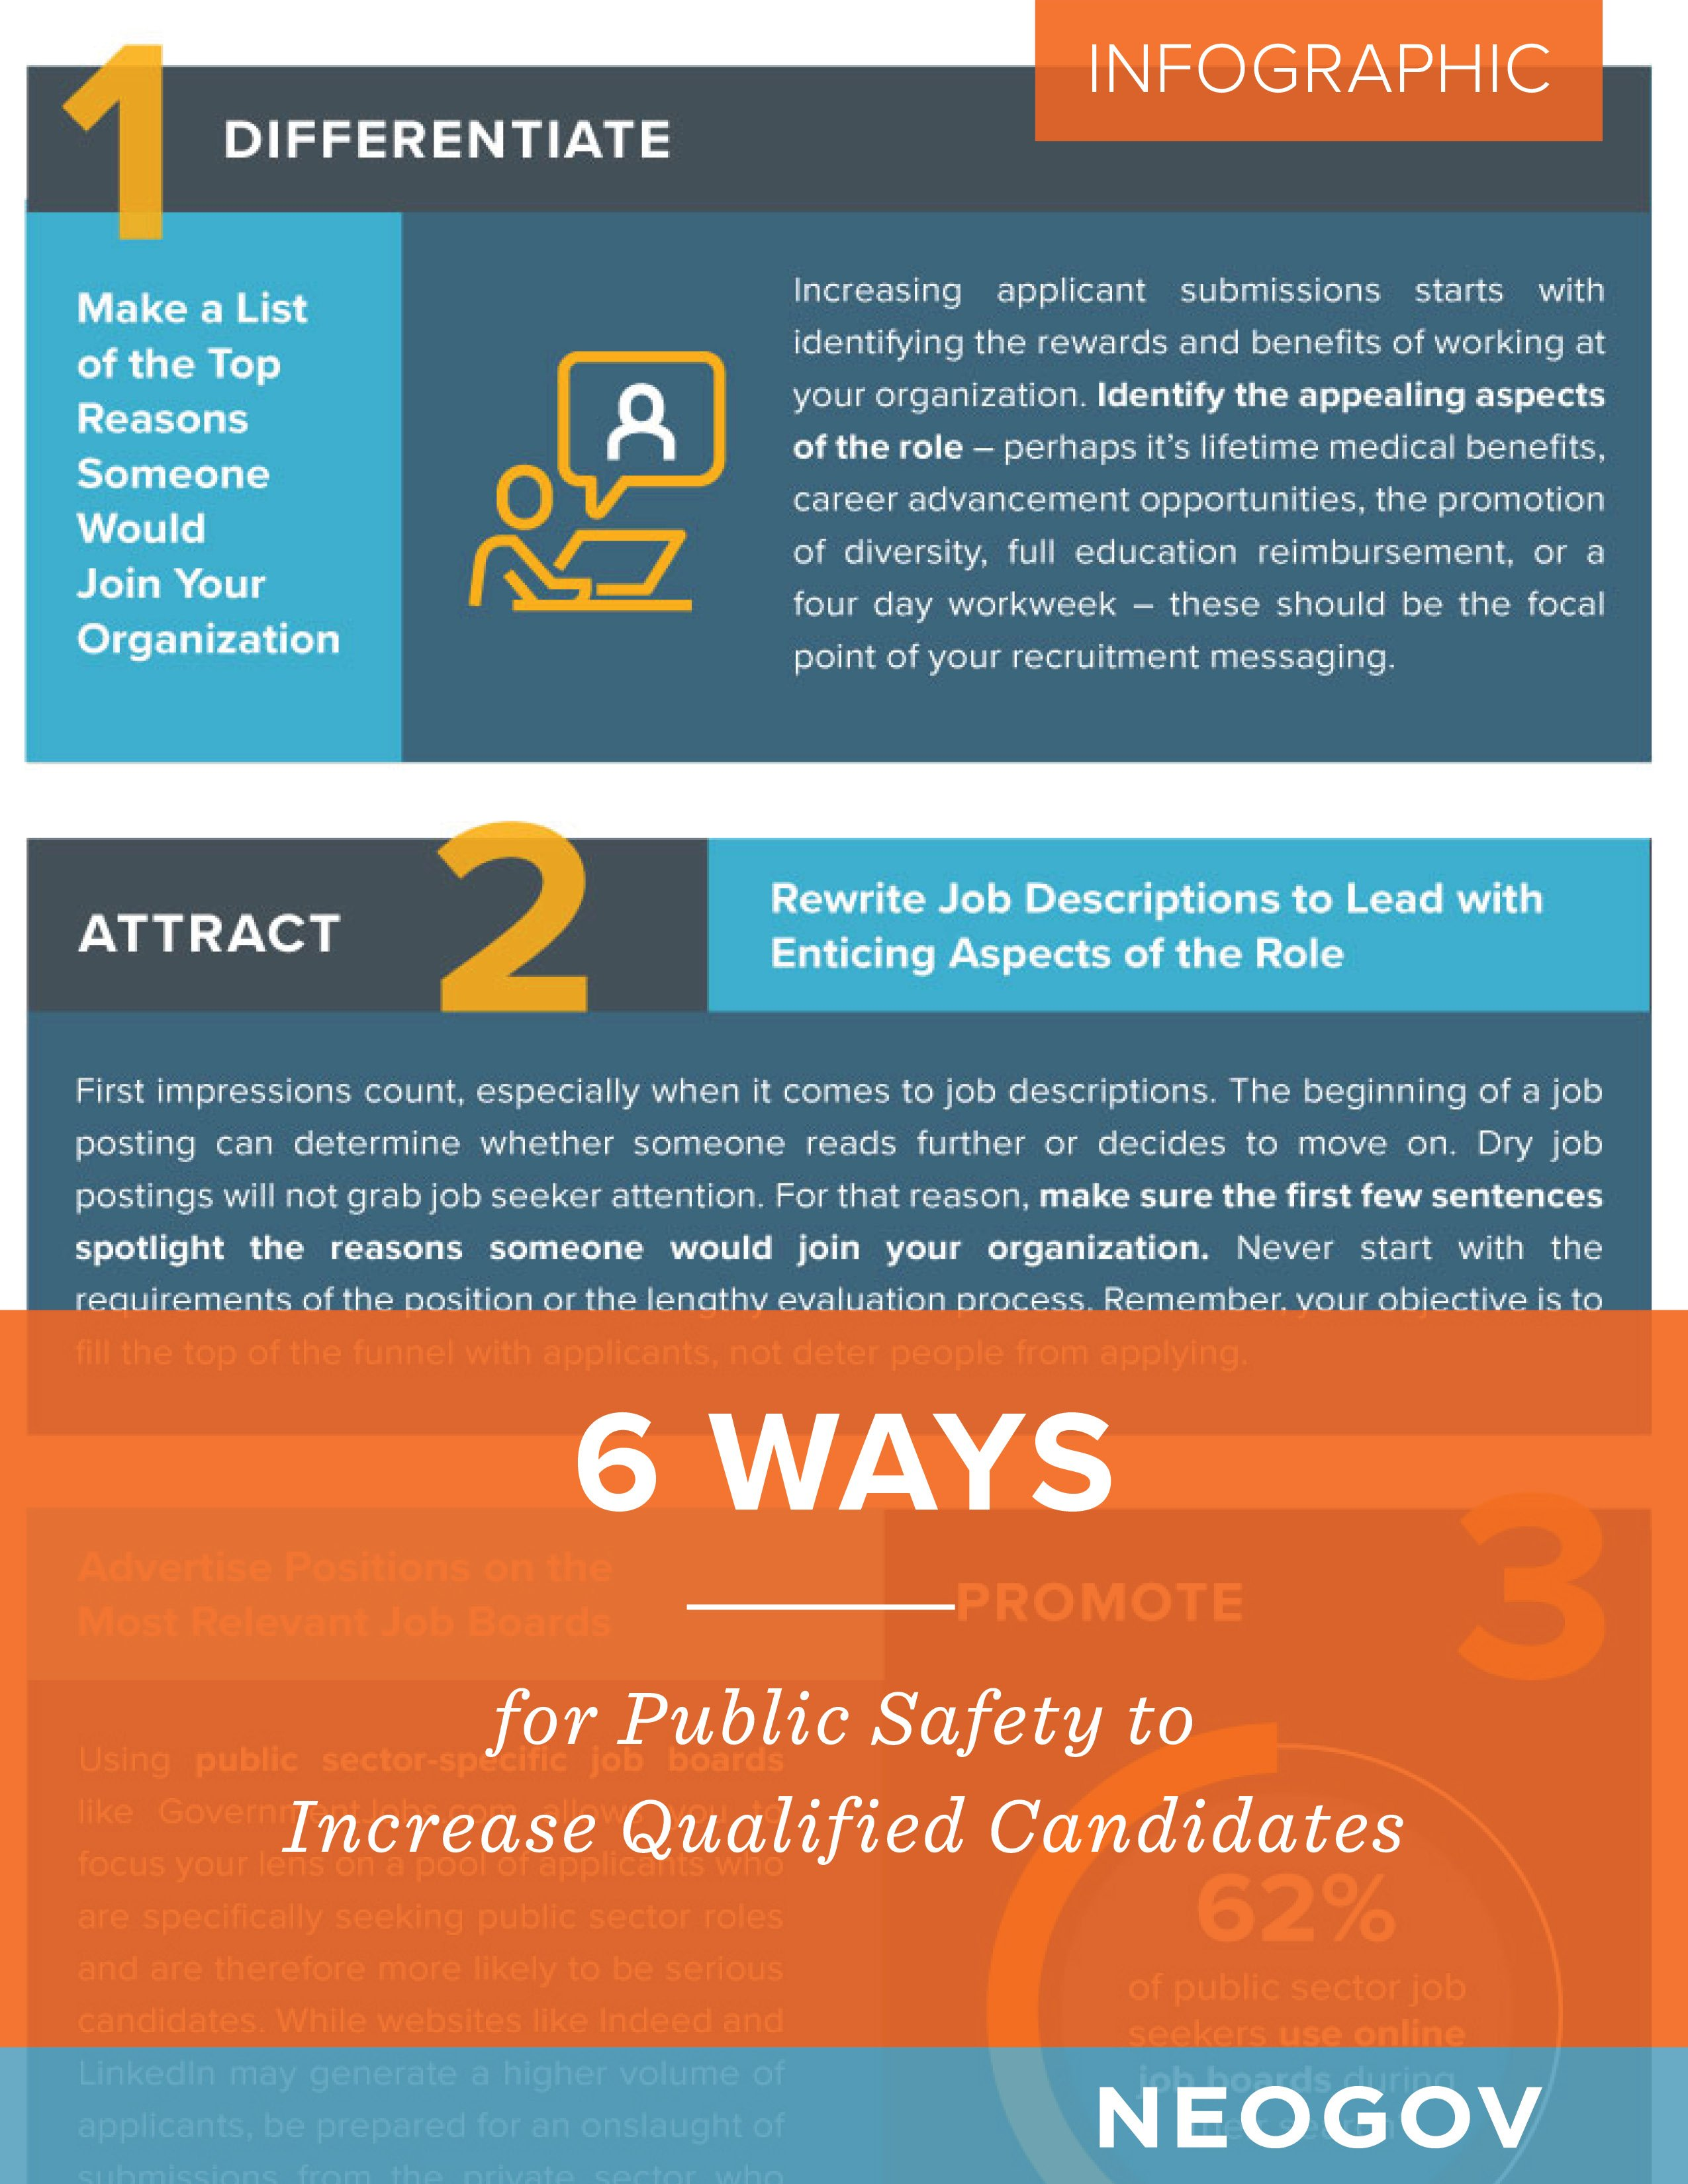 Infographic: 6 Ways for Public Safety to Increase Qualified Candidates